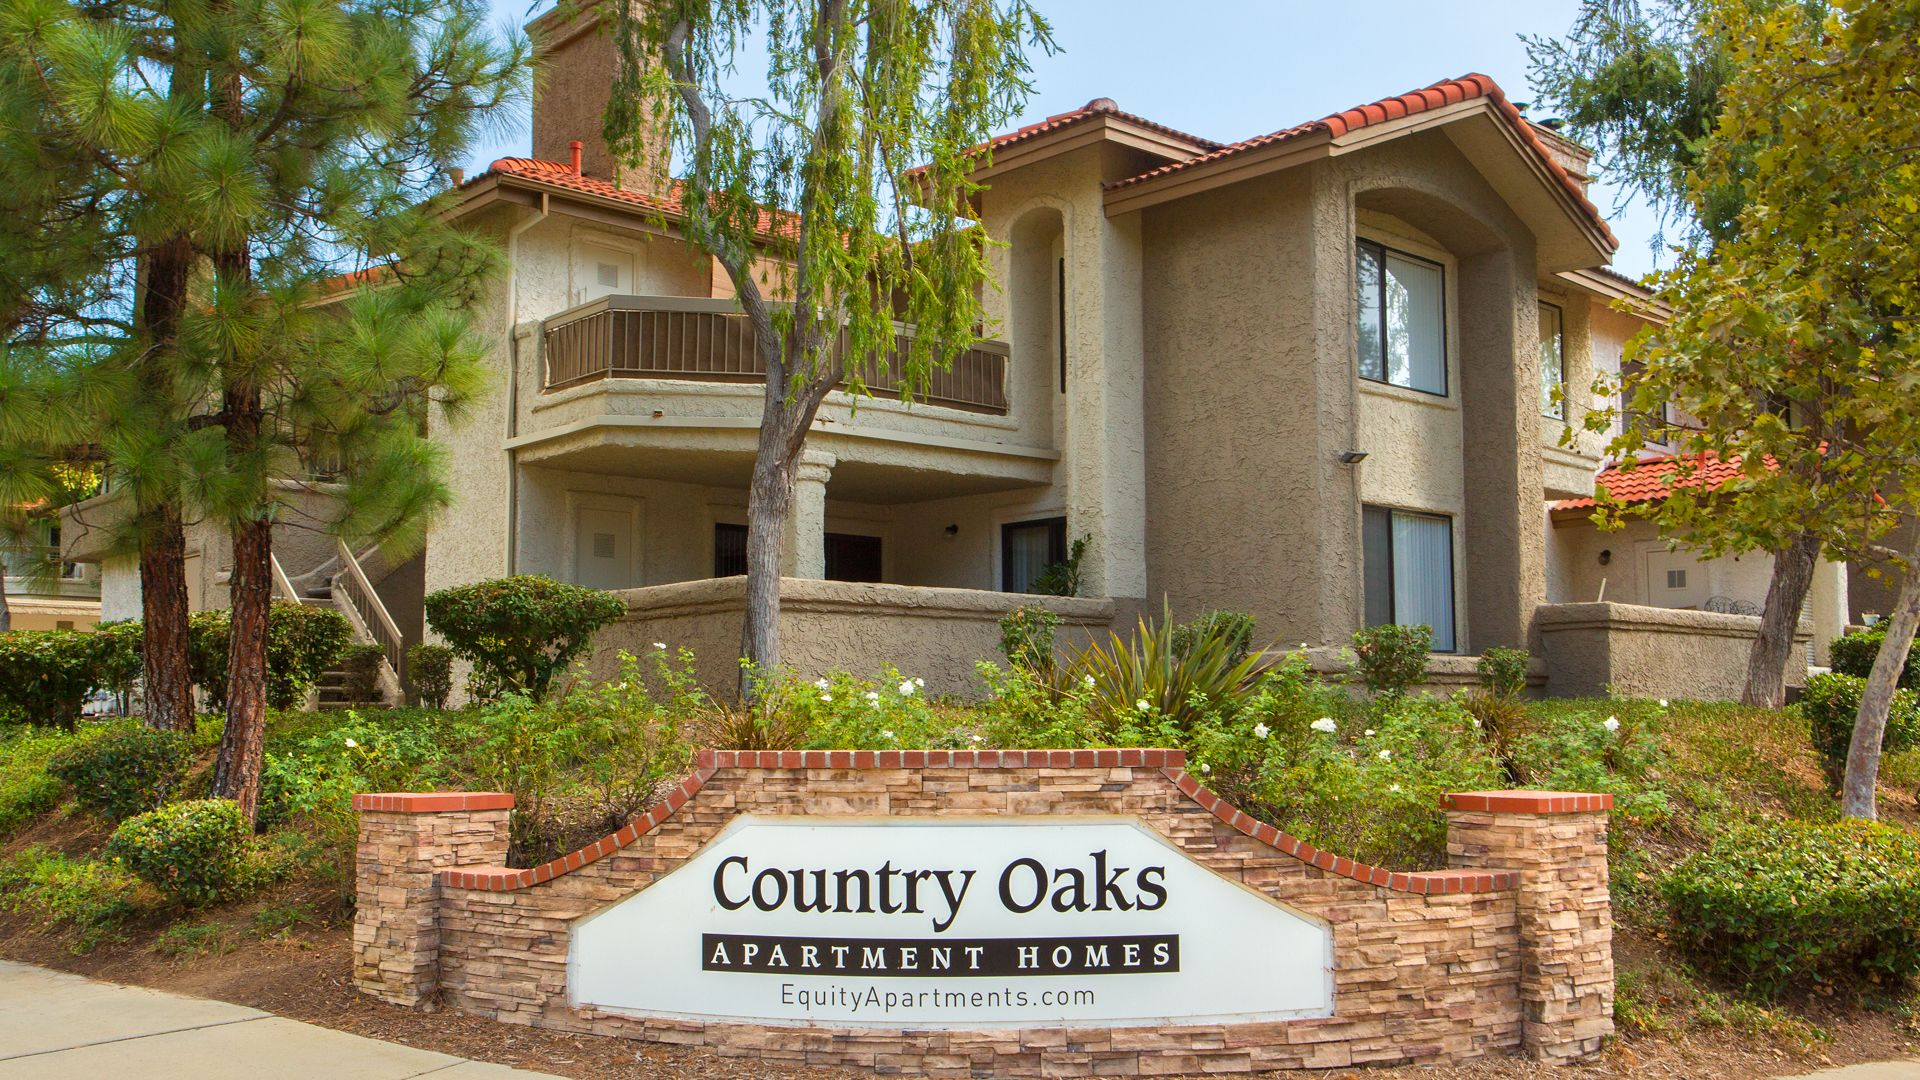 Country Oaks Apartments - Exterior